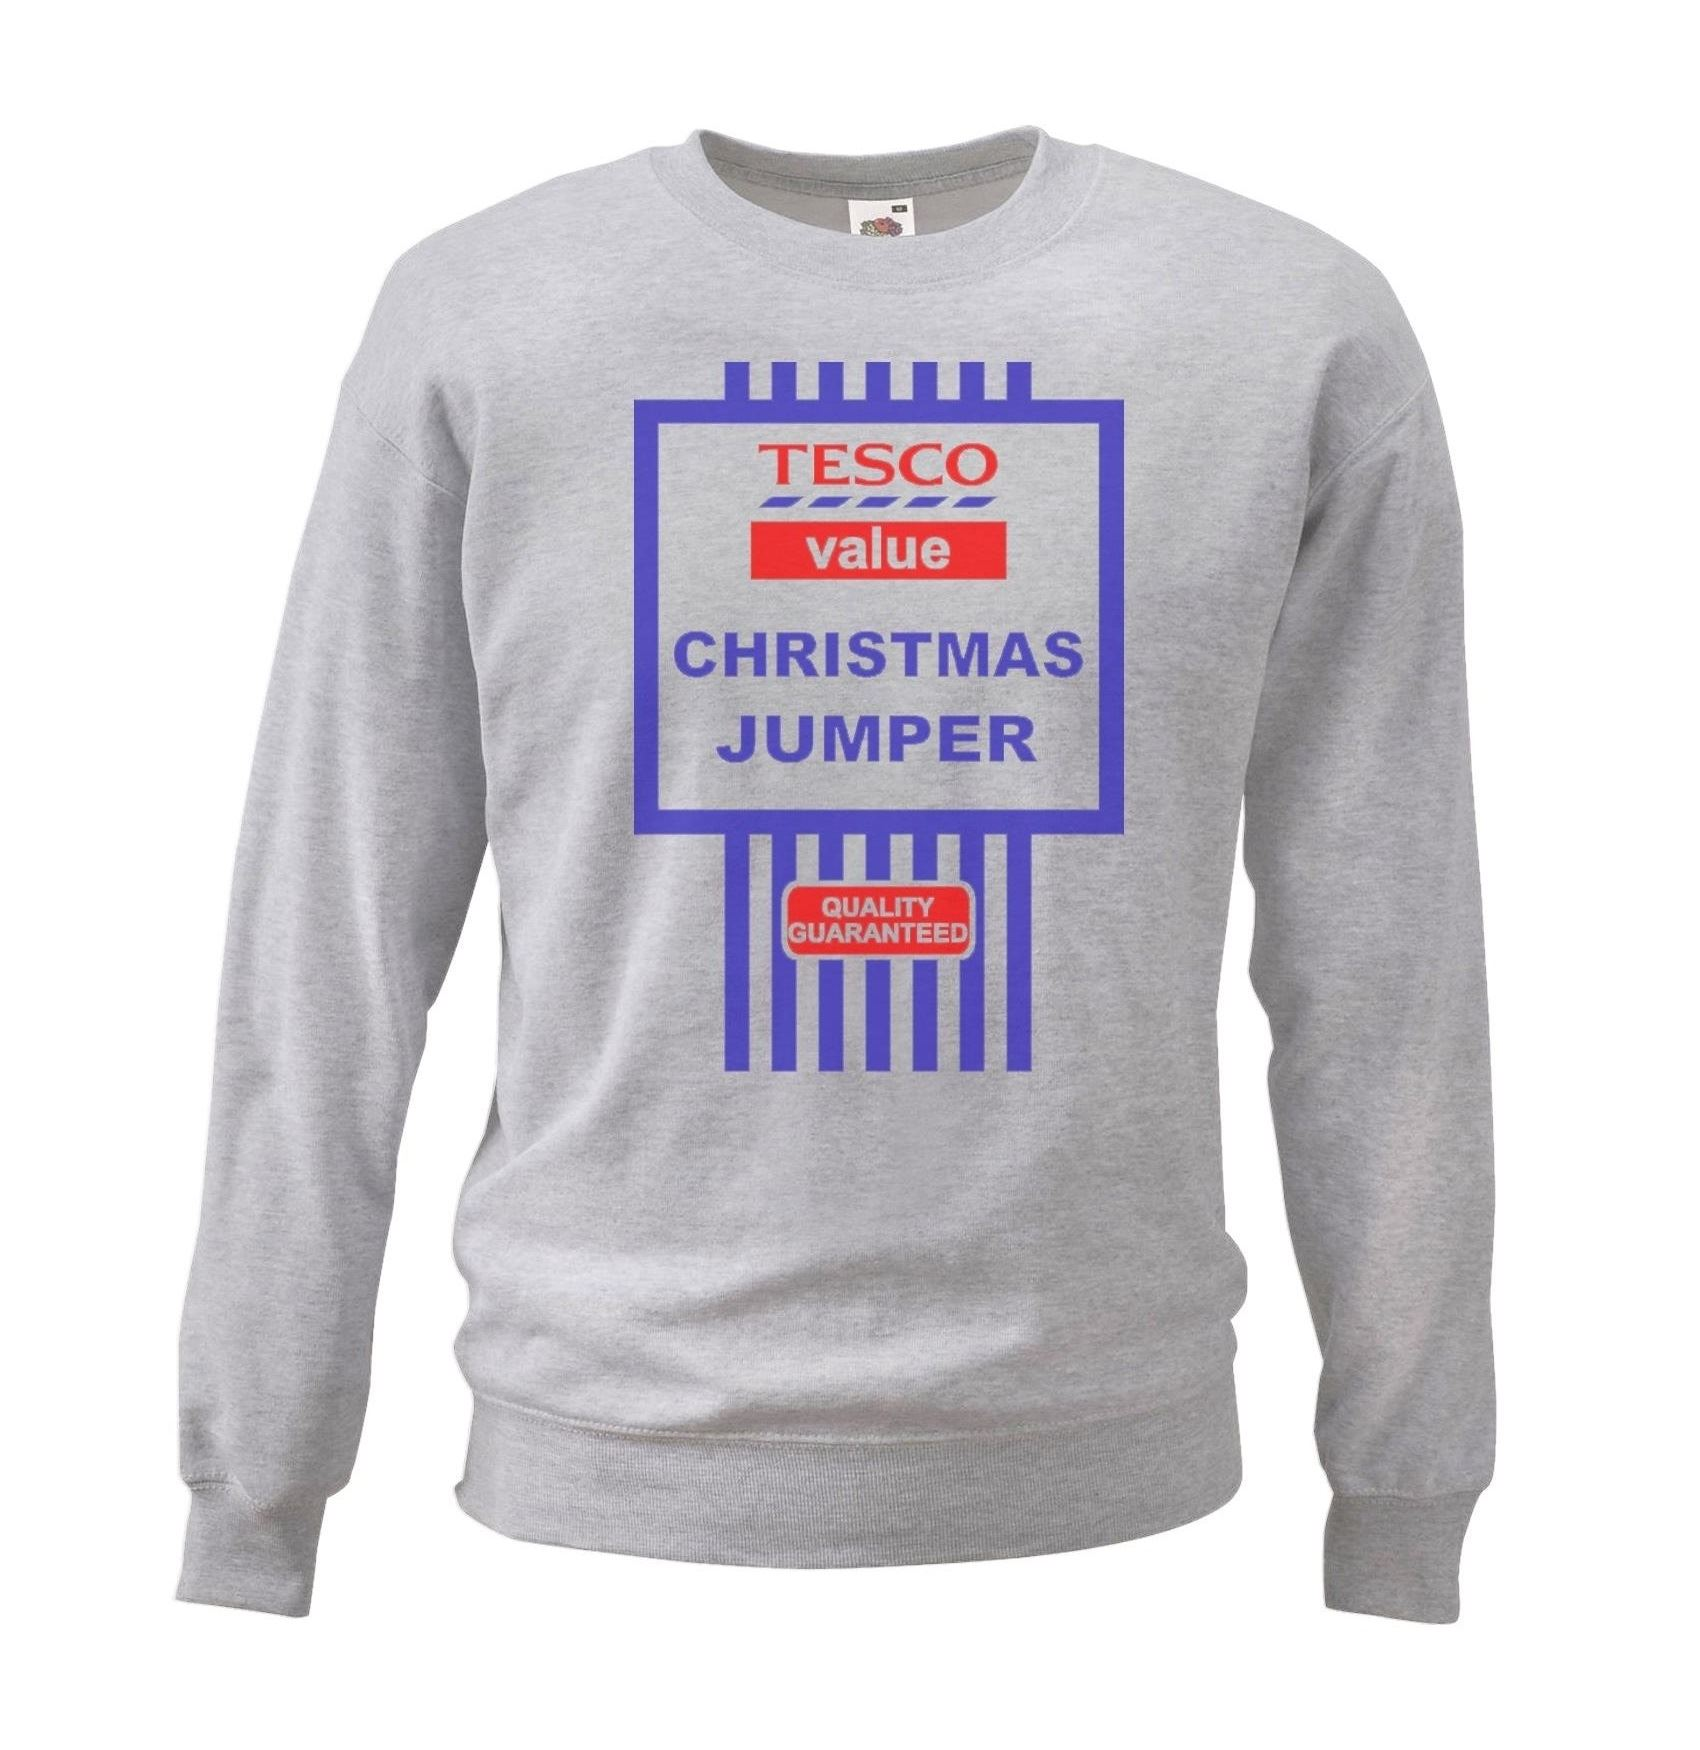 Value Secret Santa Gift Christmas Tesco Fashion Unisex Jumper Sweatshirt Top